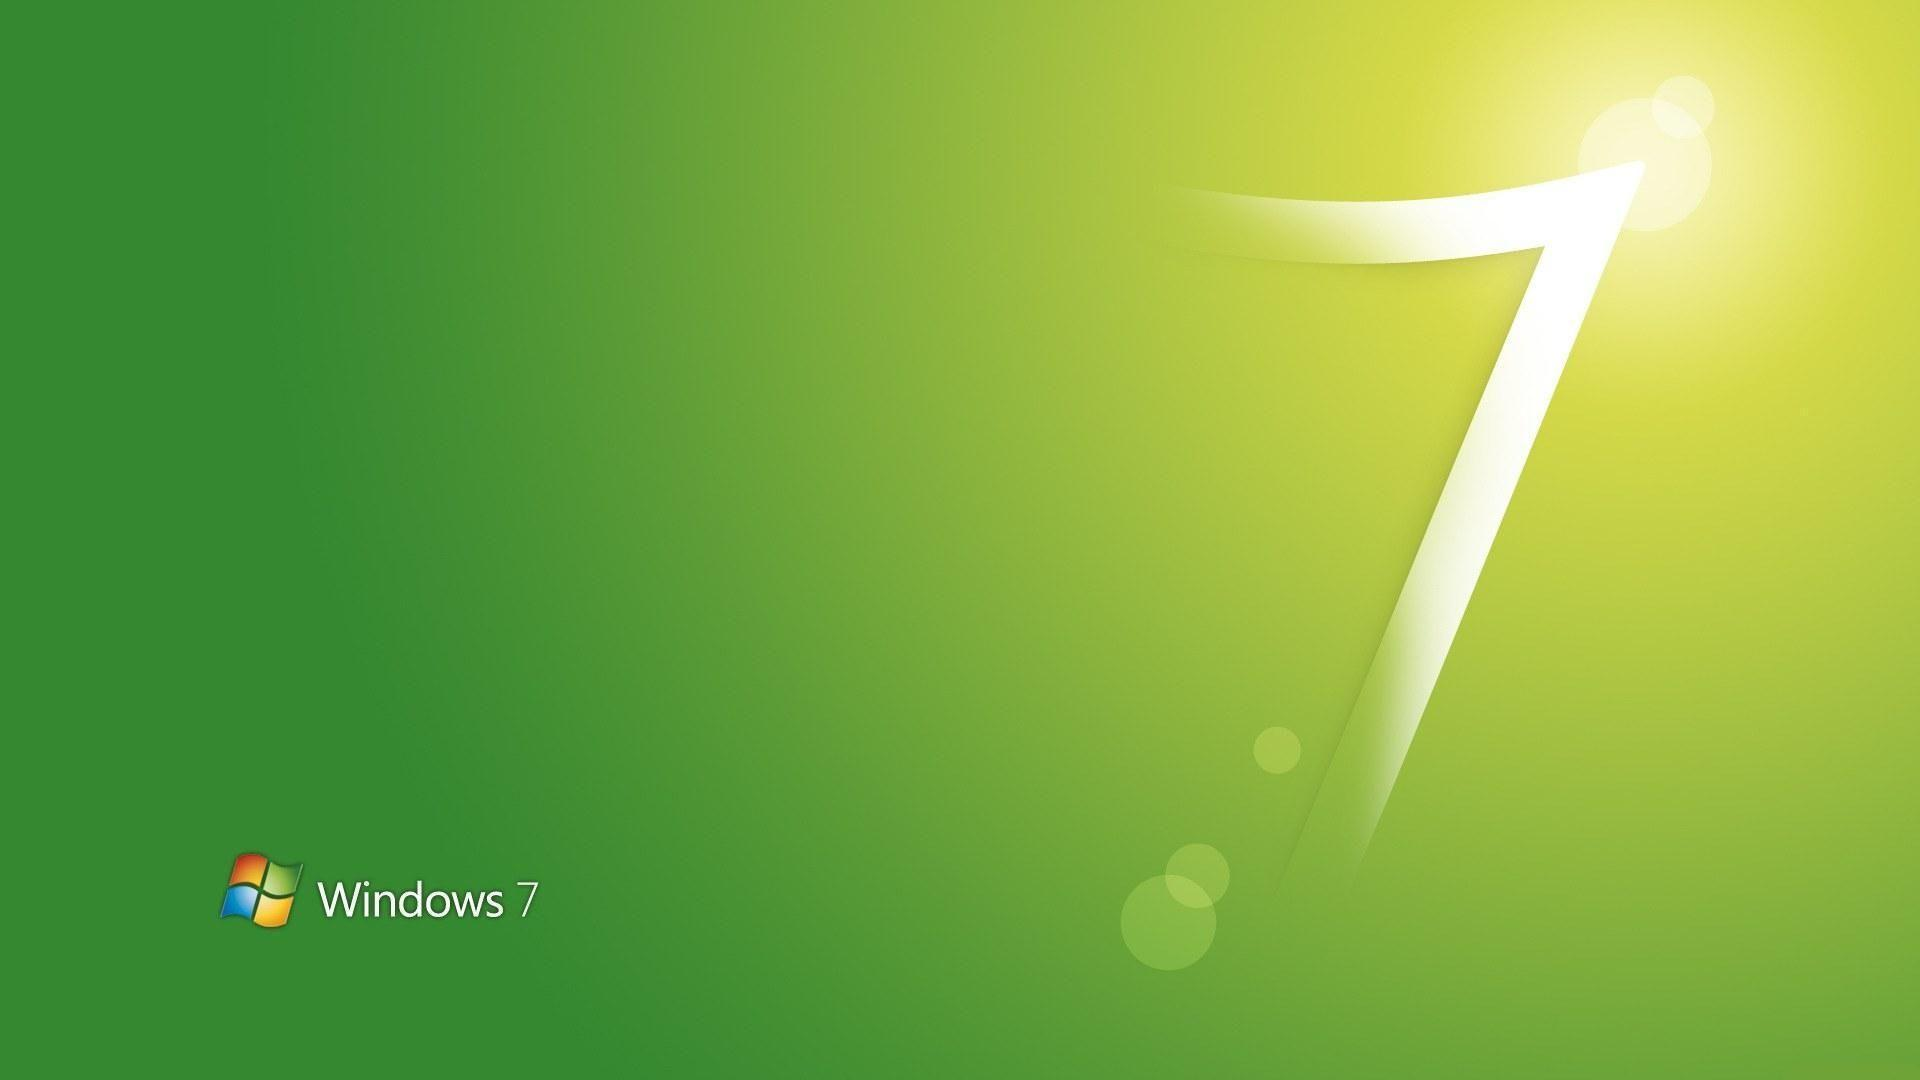 Wallpapers For > Windows 7 Wallpapers Green